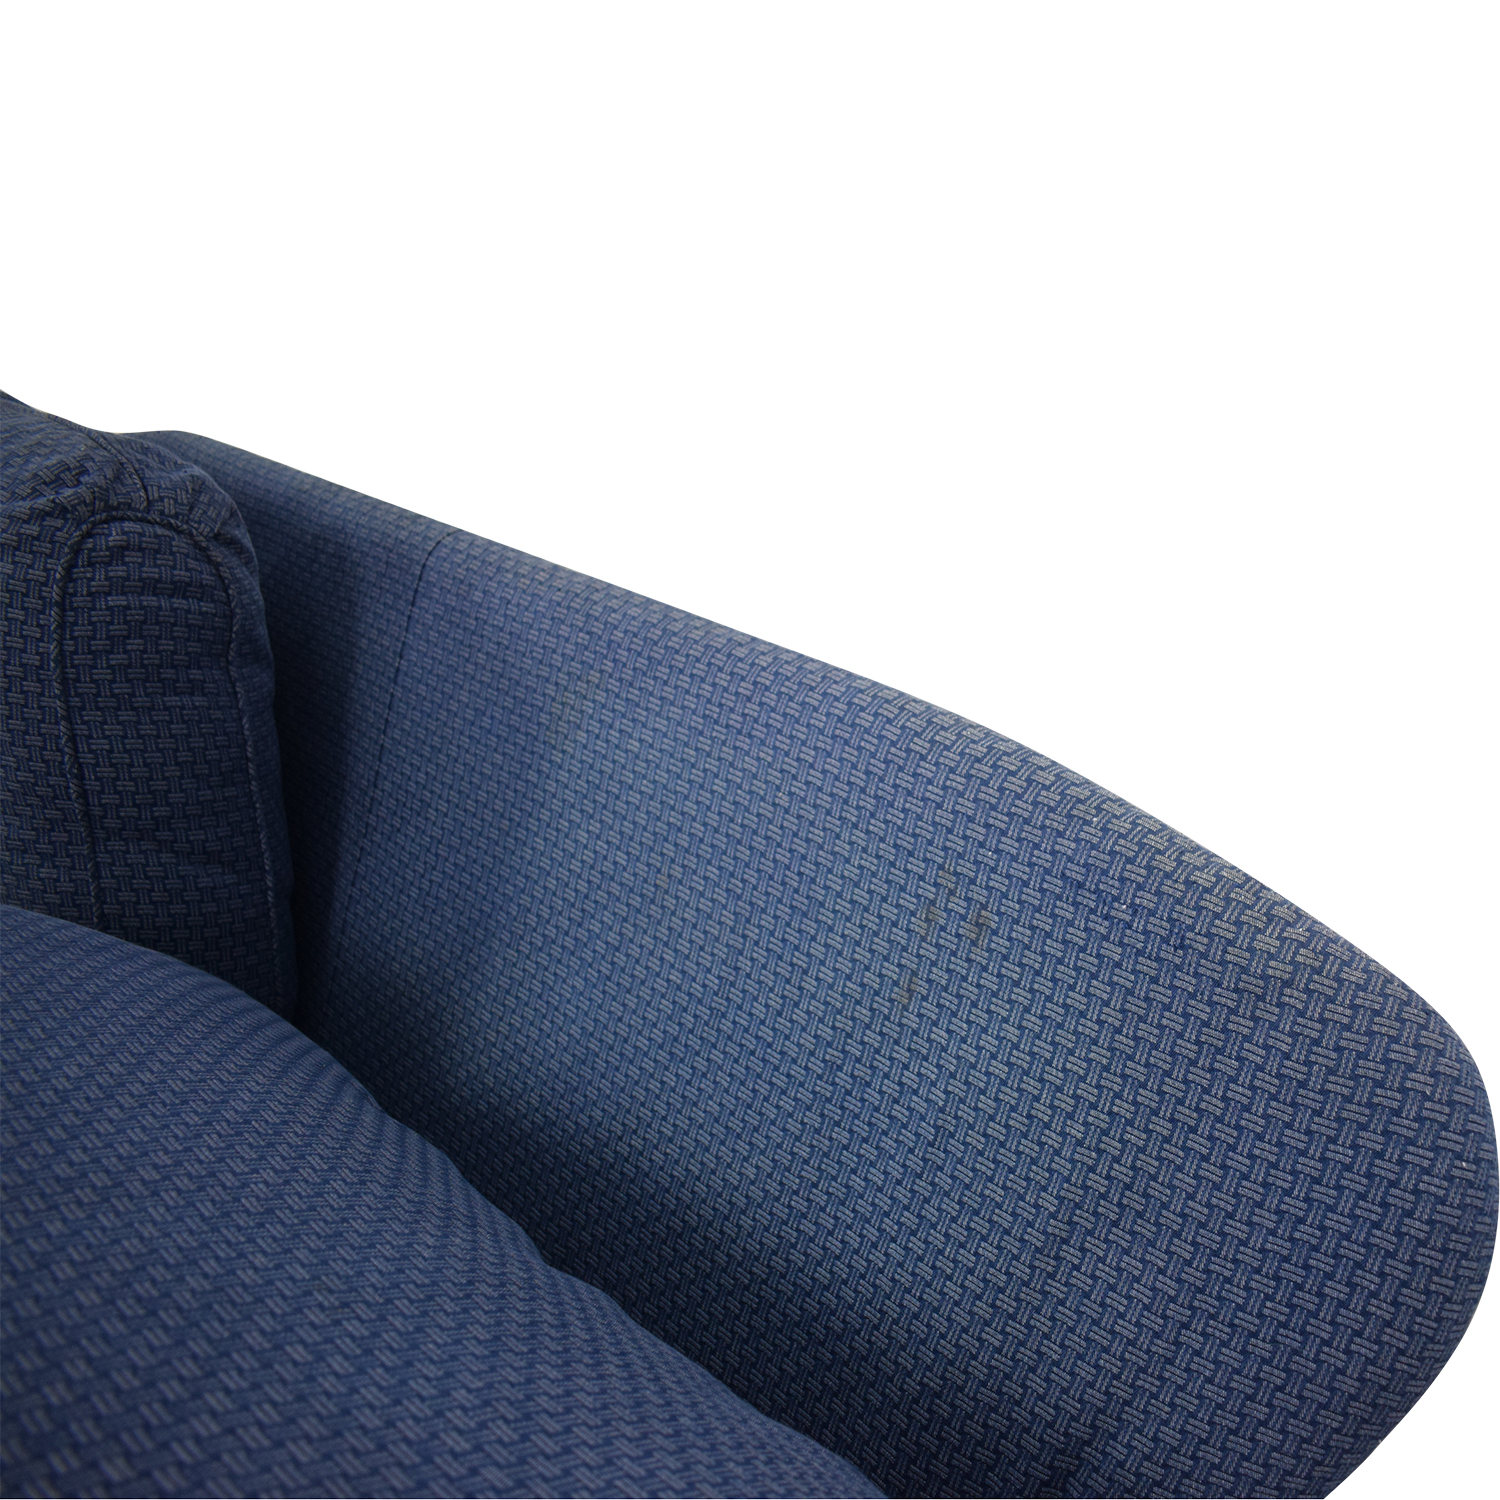 Calico Calico Classic Home Recessed Panel Arm Blue Down-Filled Sofa price